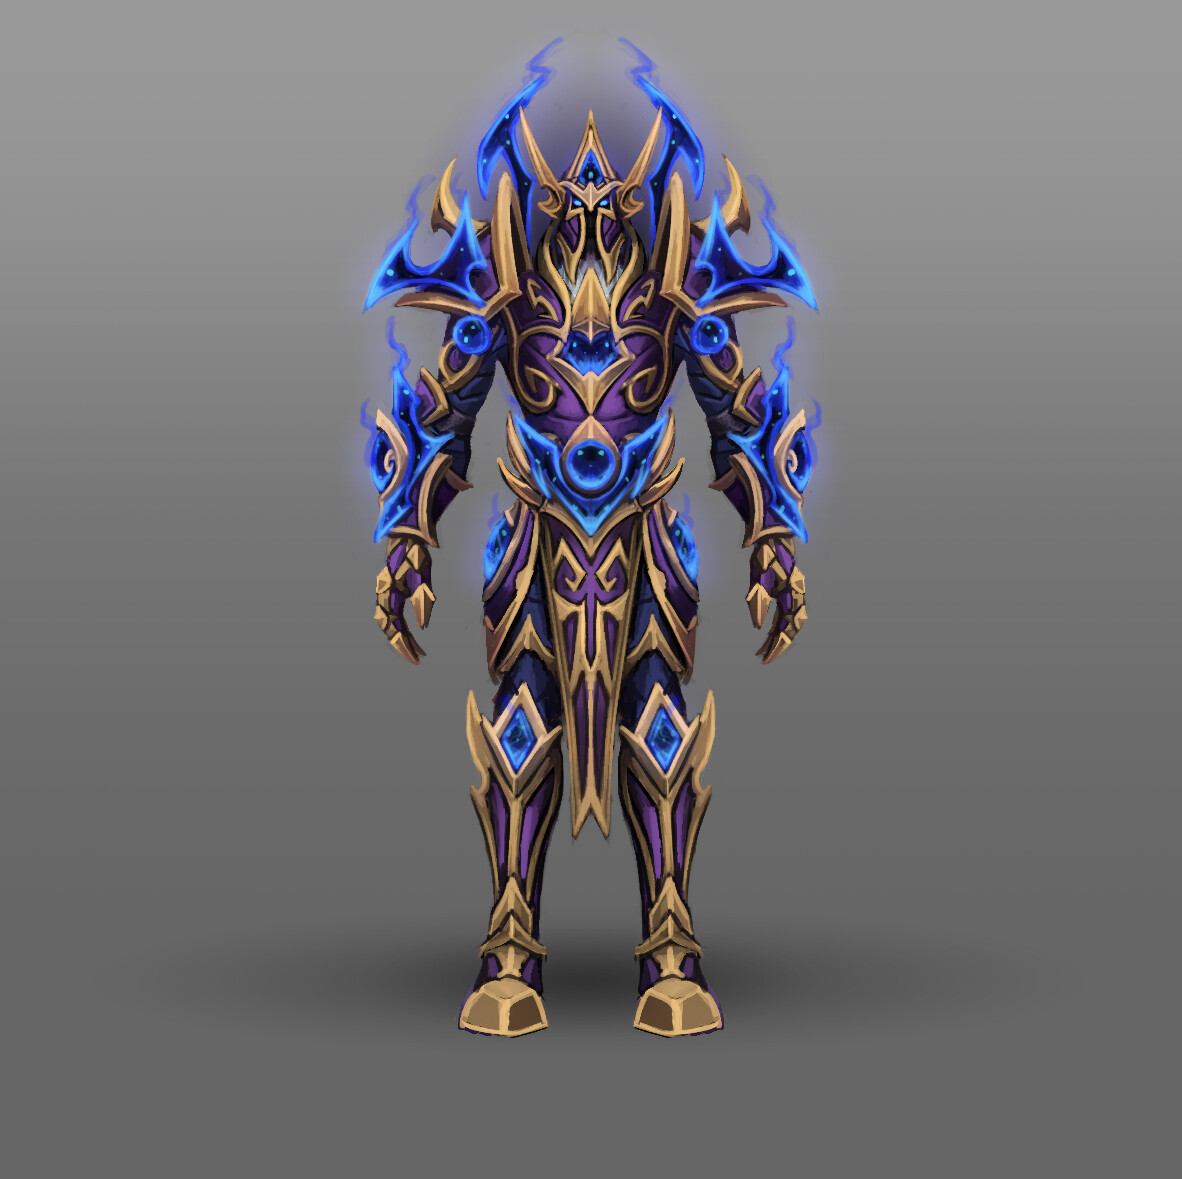 Arthur Lorenz Fan Art World Of Warcraft Racial Class Armor Design Voidelf Lightforged draenei, highmountain tauren you can use heirlooms and experience potions while leveling your allied race character and still receive your heritage armor. racial class armor design